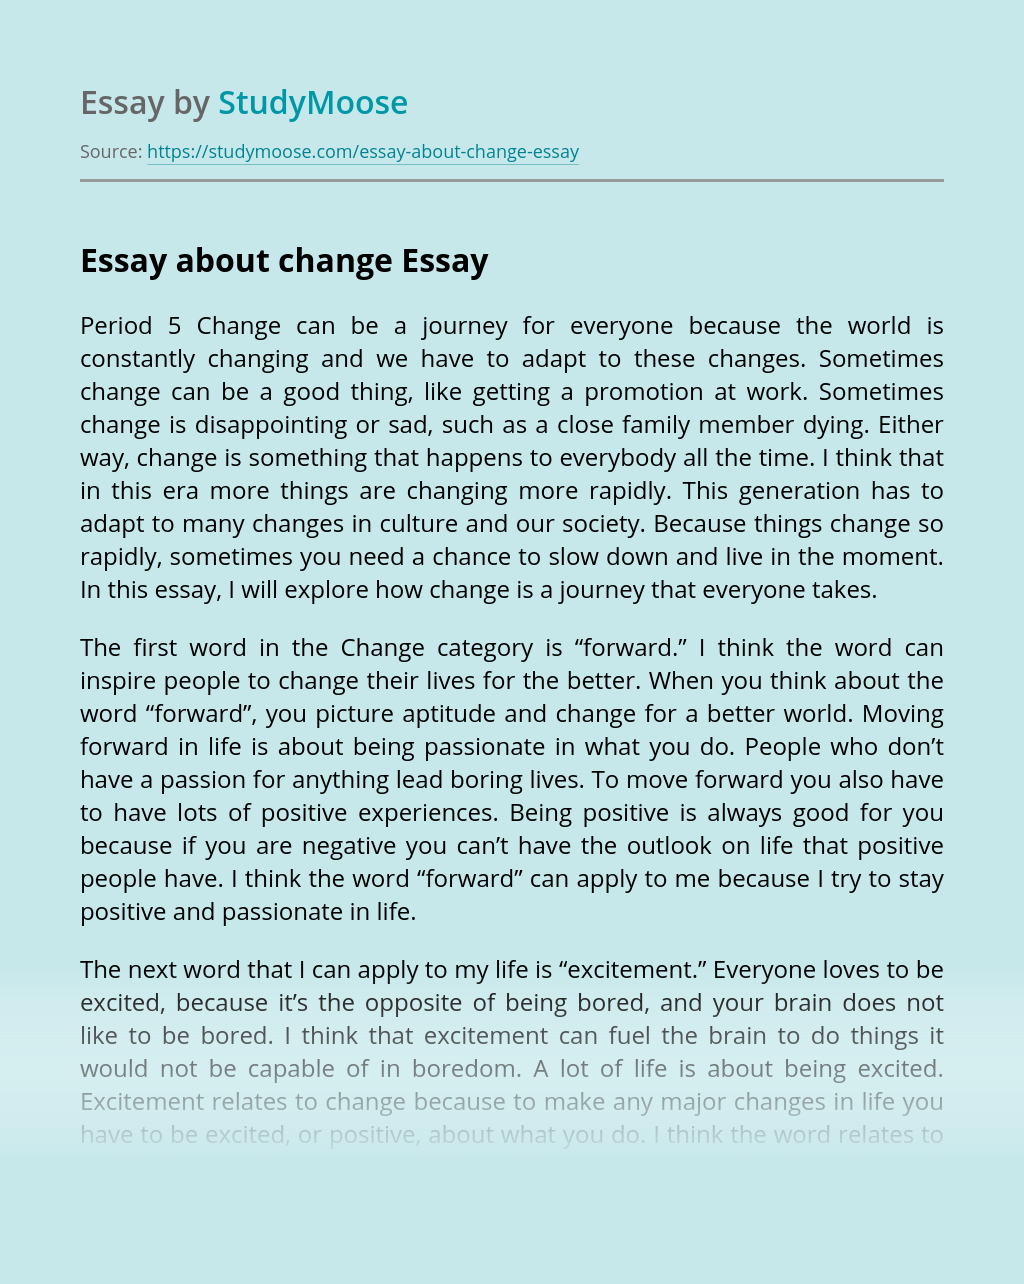 Essay about change